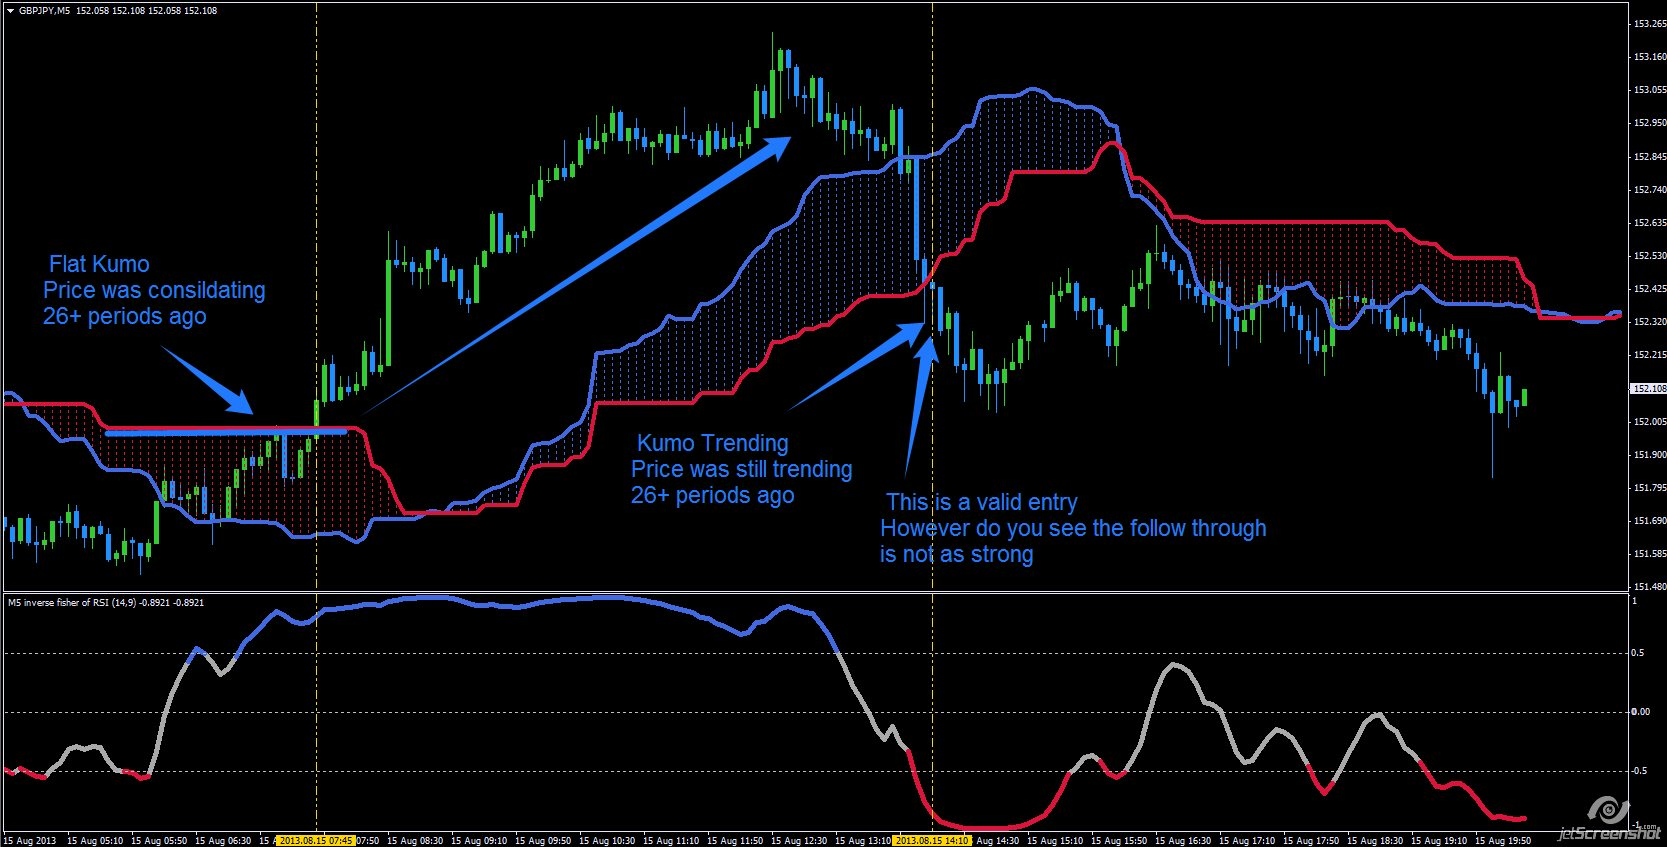 Ichimoku cloud metatrader 8 hour